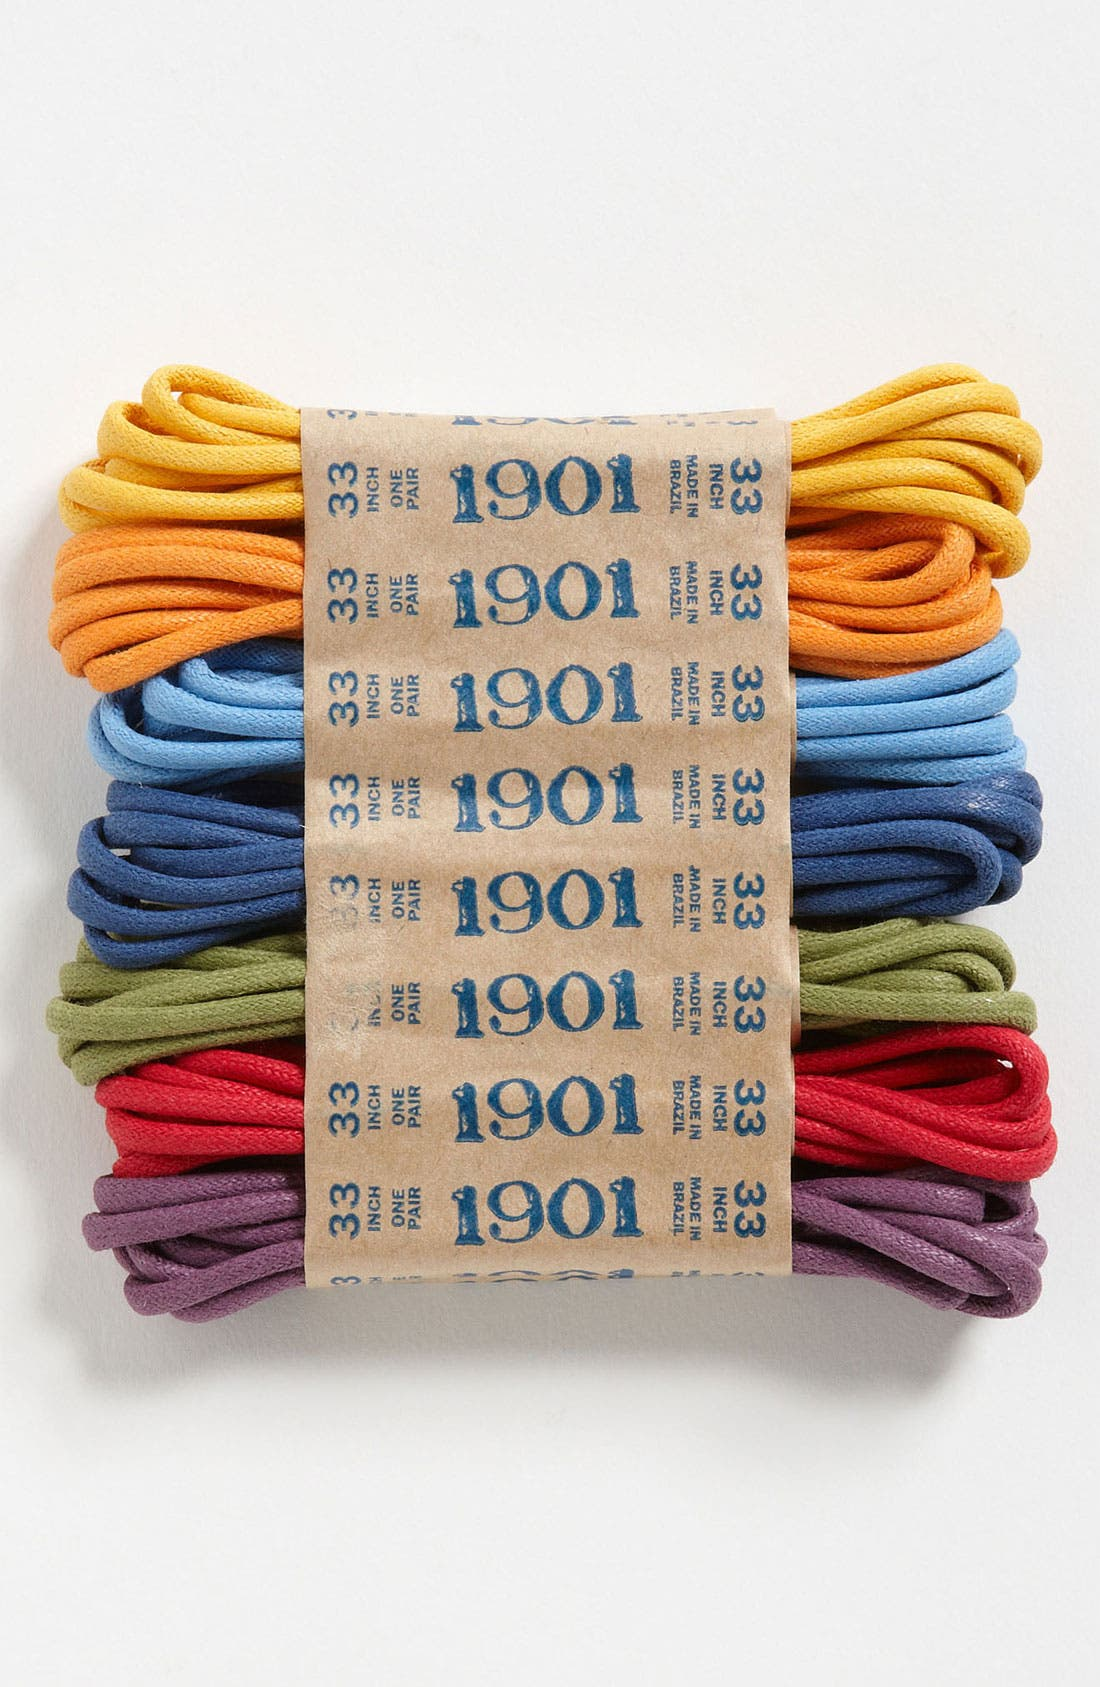 Main Image - 1901 Shoelaces (7-Pack)